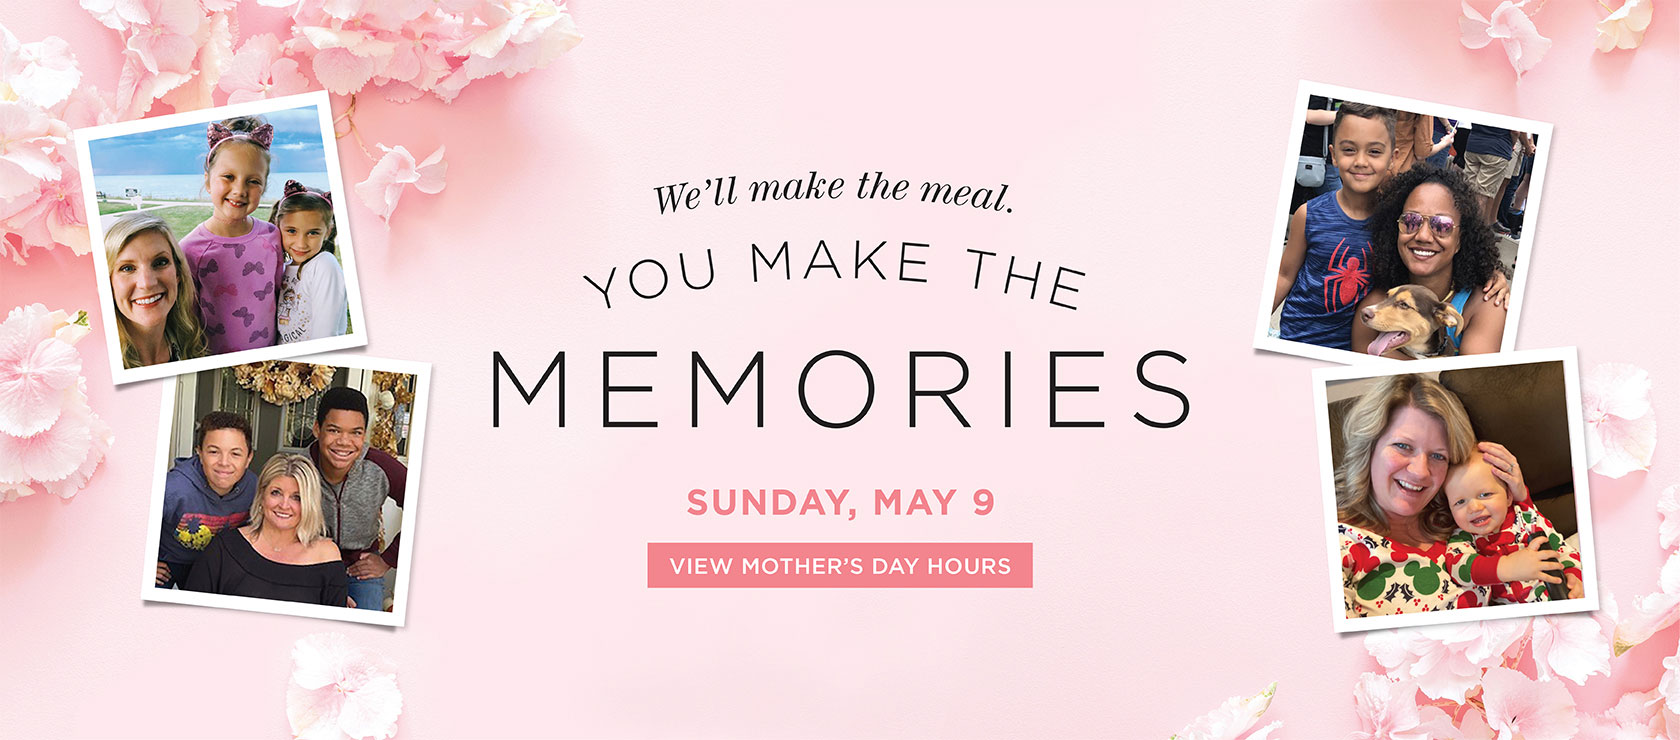 We'll make the meal. You make the memories. Sunday, May 9. View Mother's Day Hours